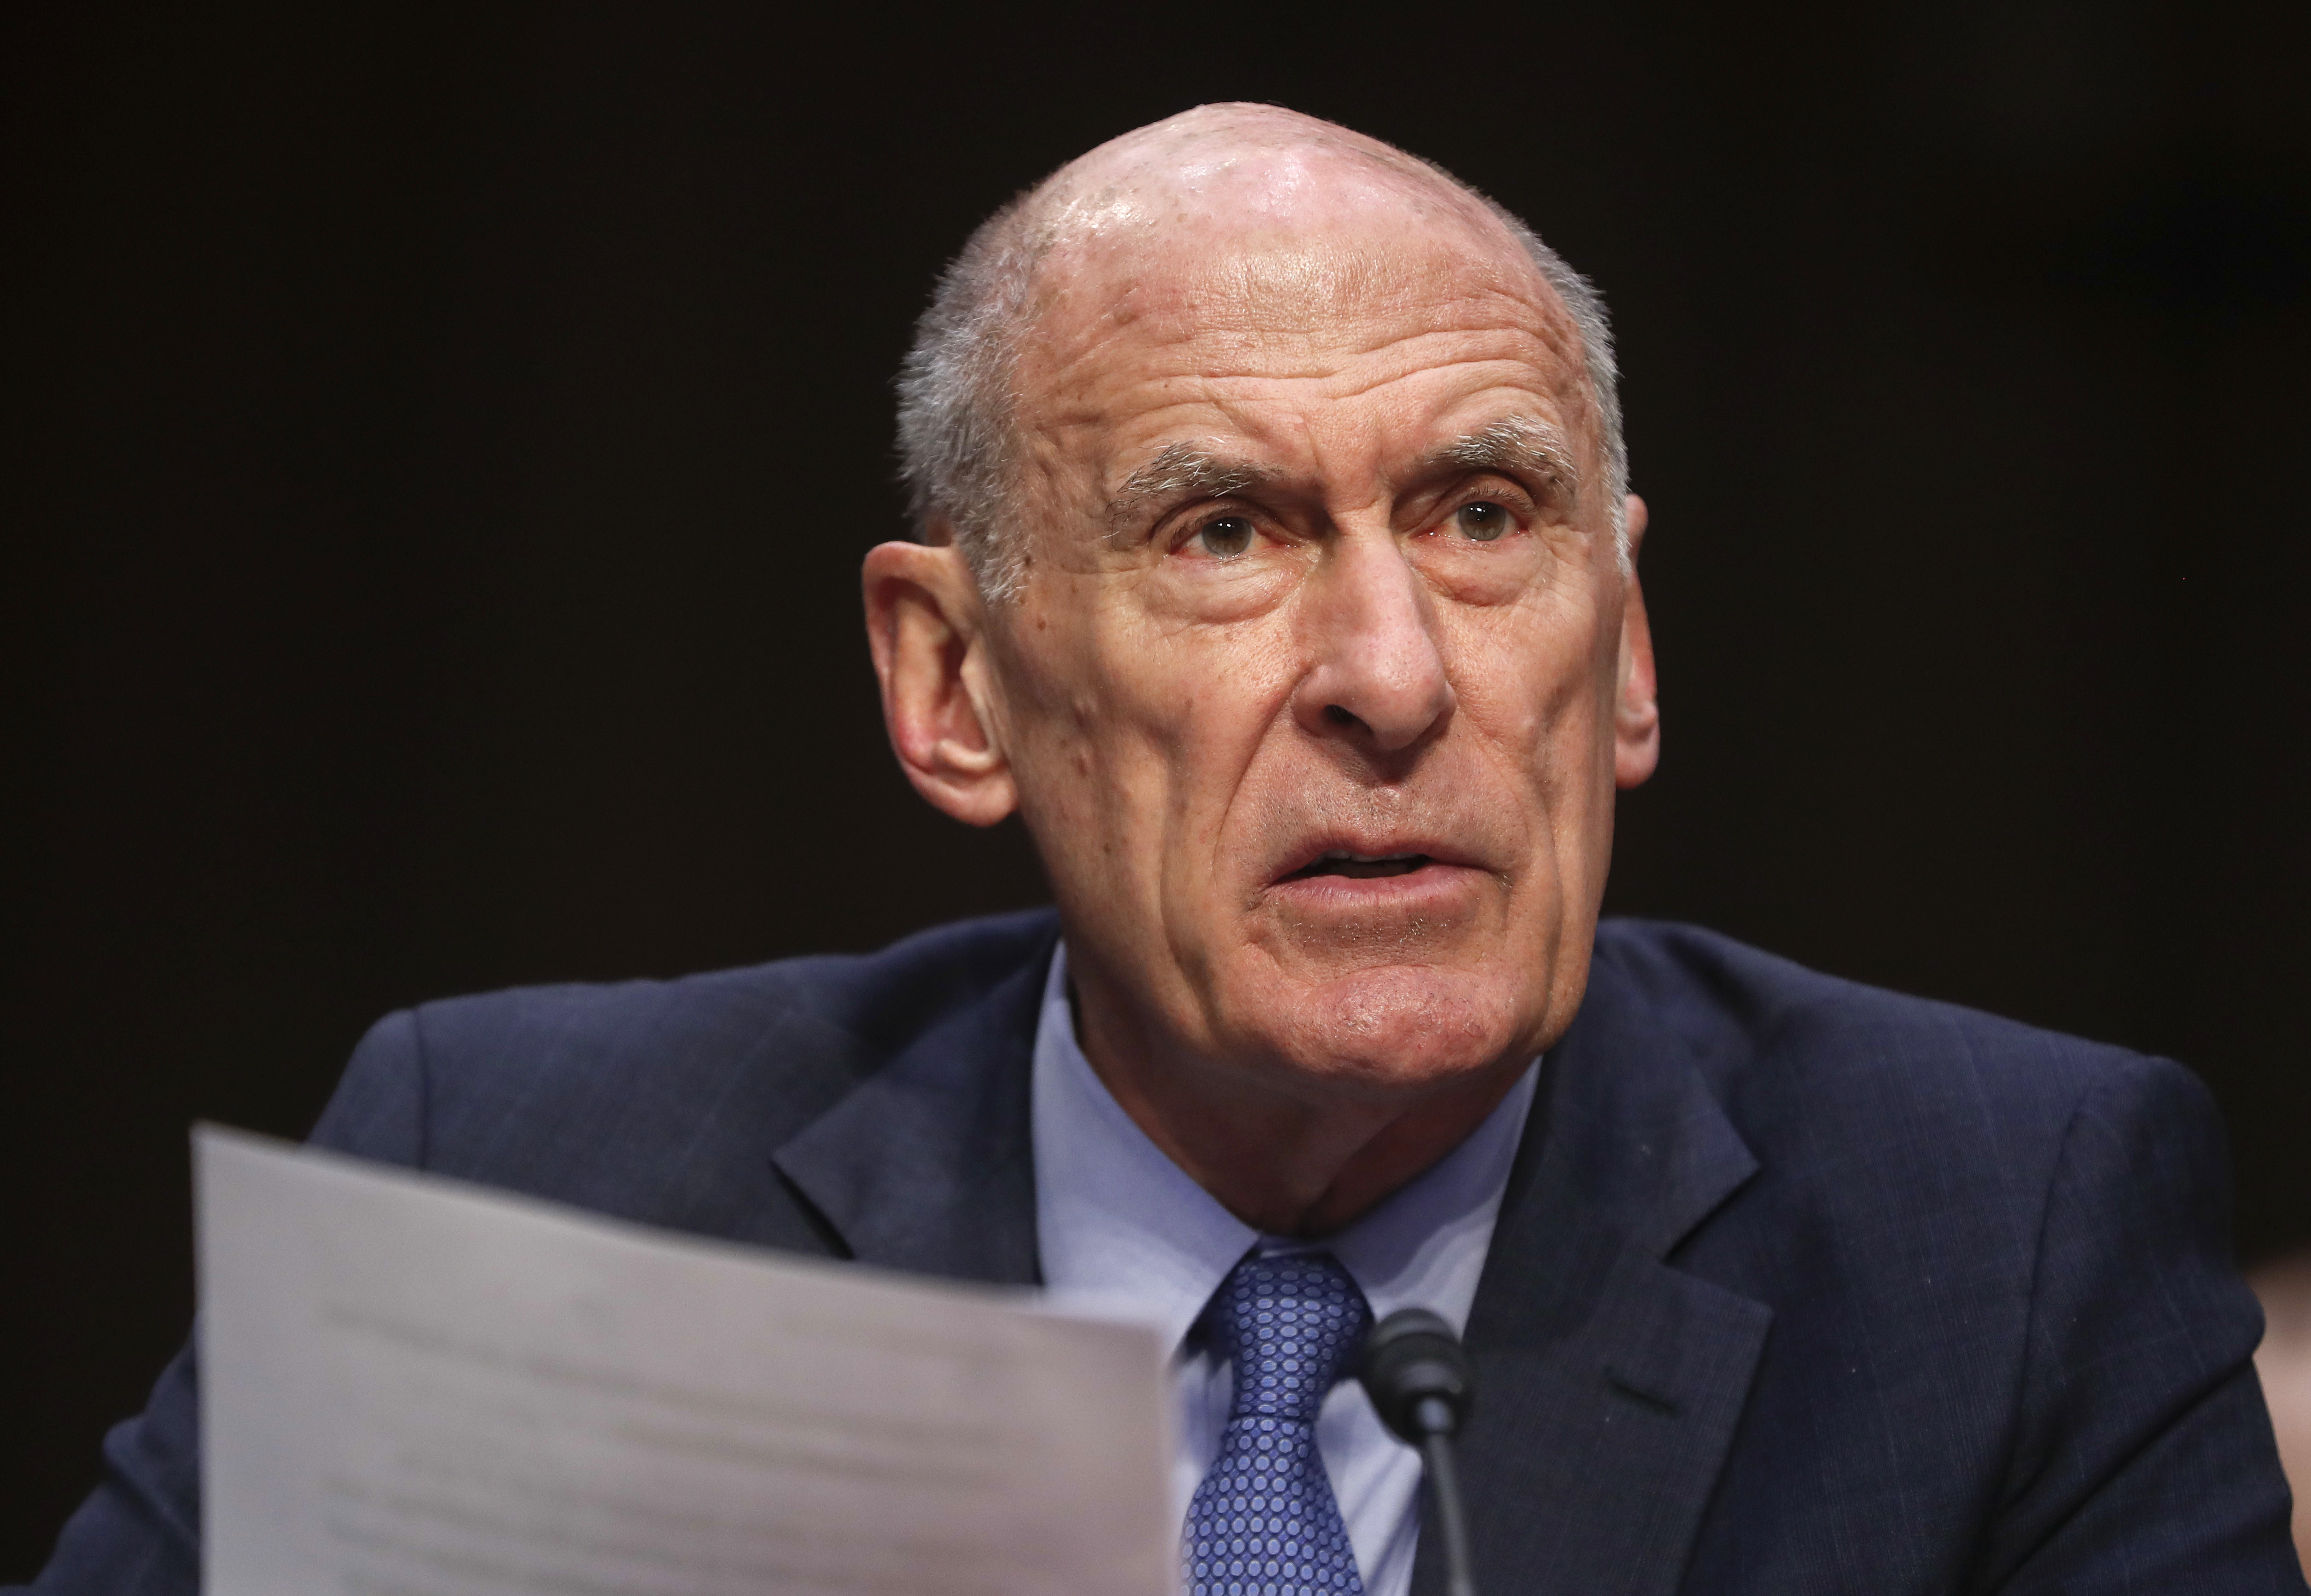 Dan Coats, former DNI, rejoining King & Spalding law firm as senior policy adviser